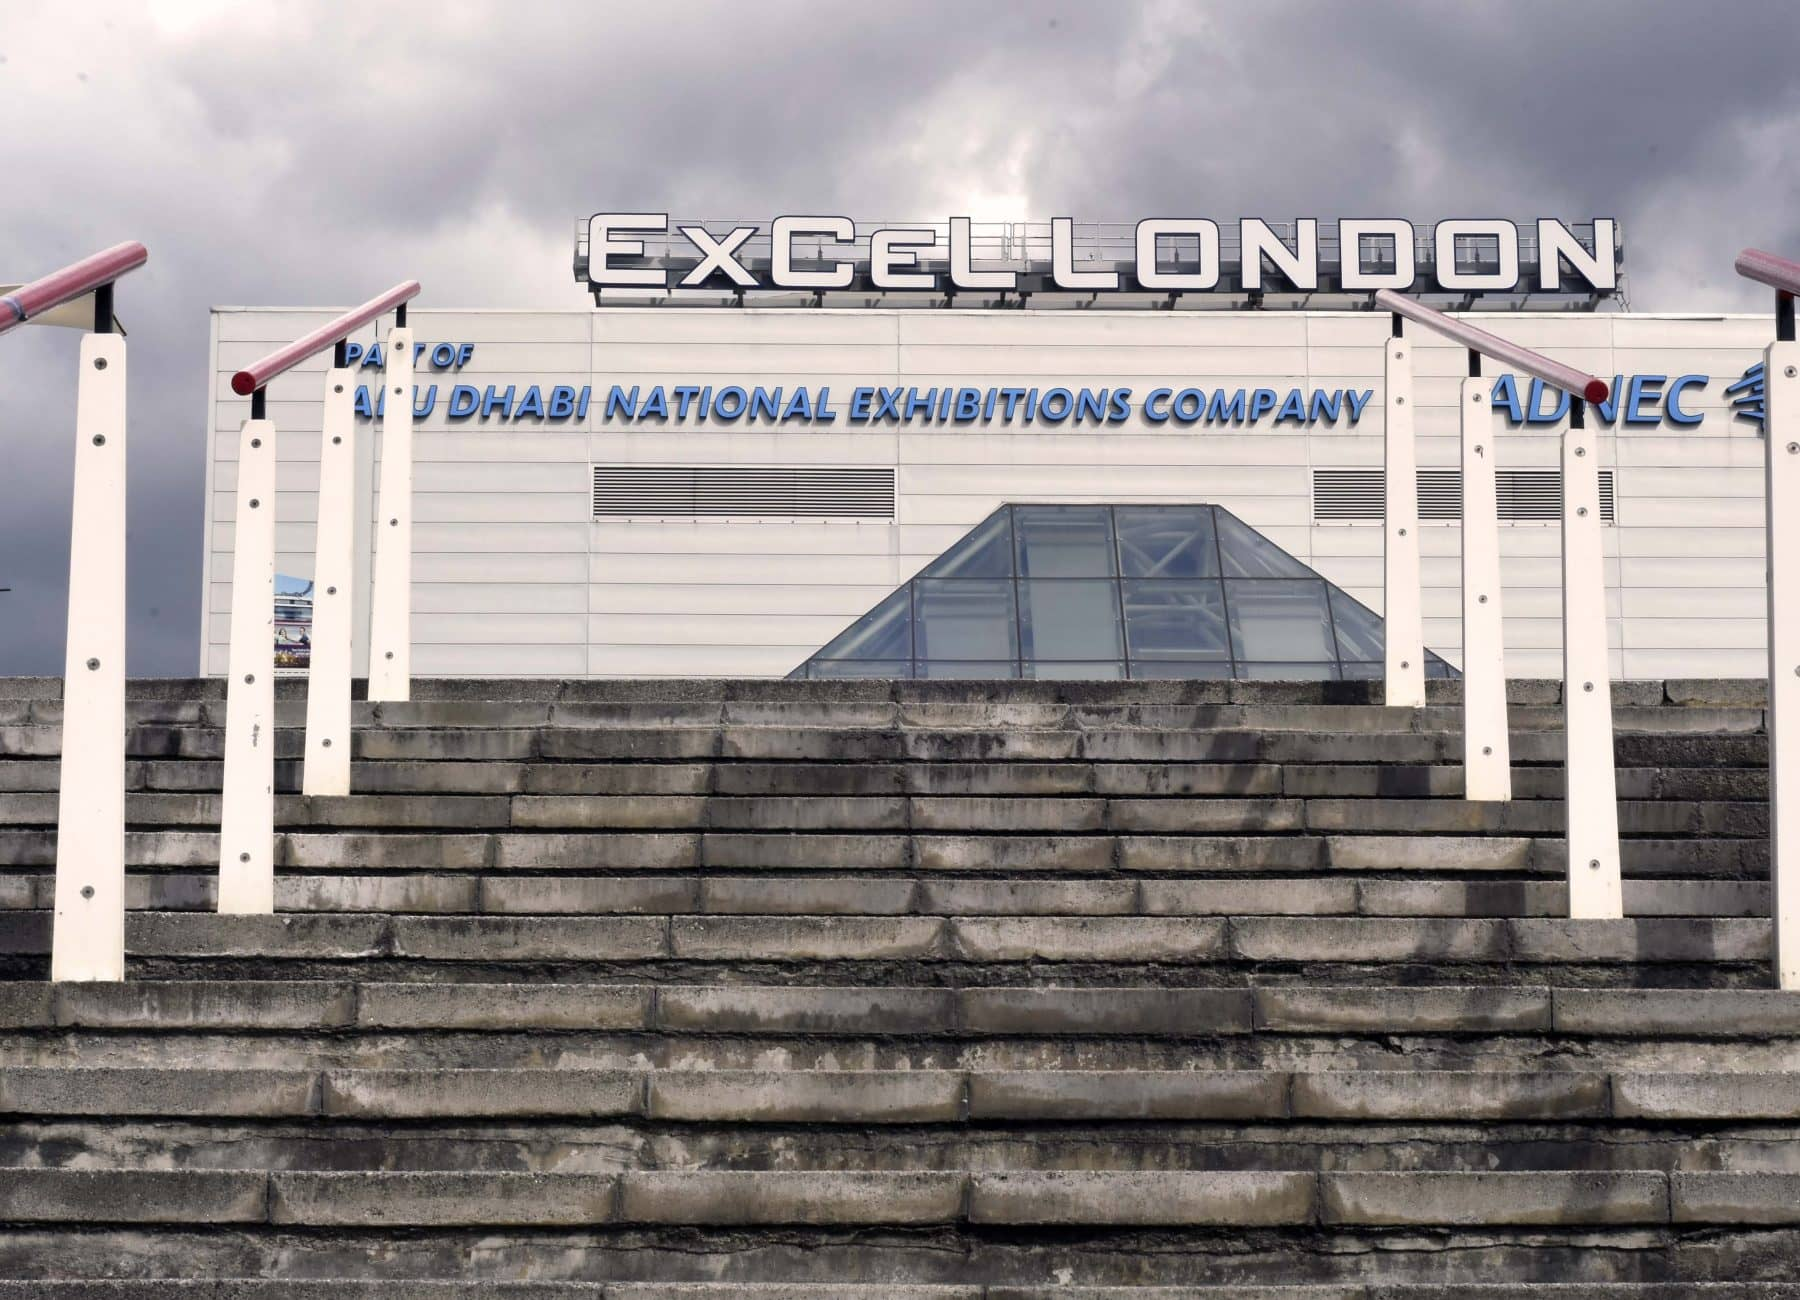 Picture of the ExCel exhibition centre in London